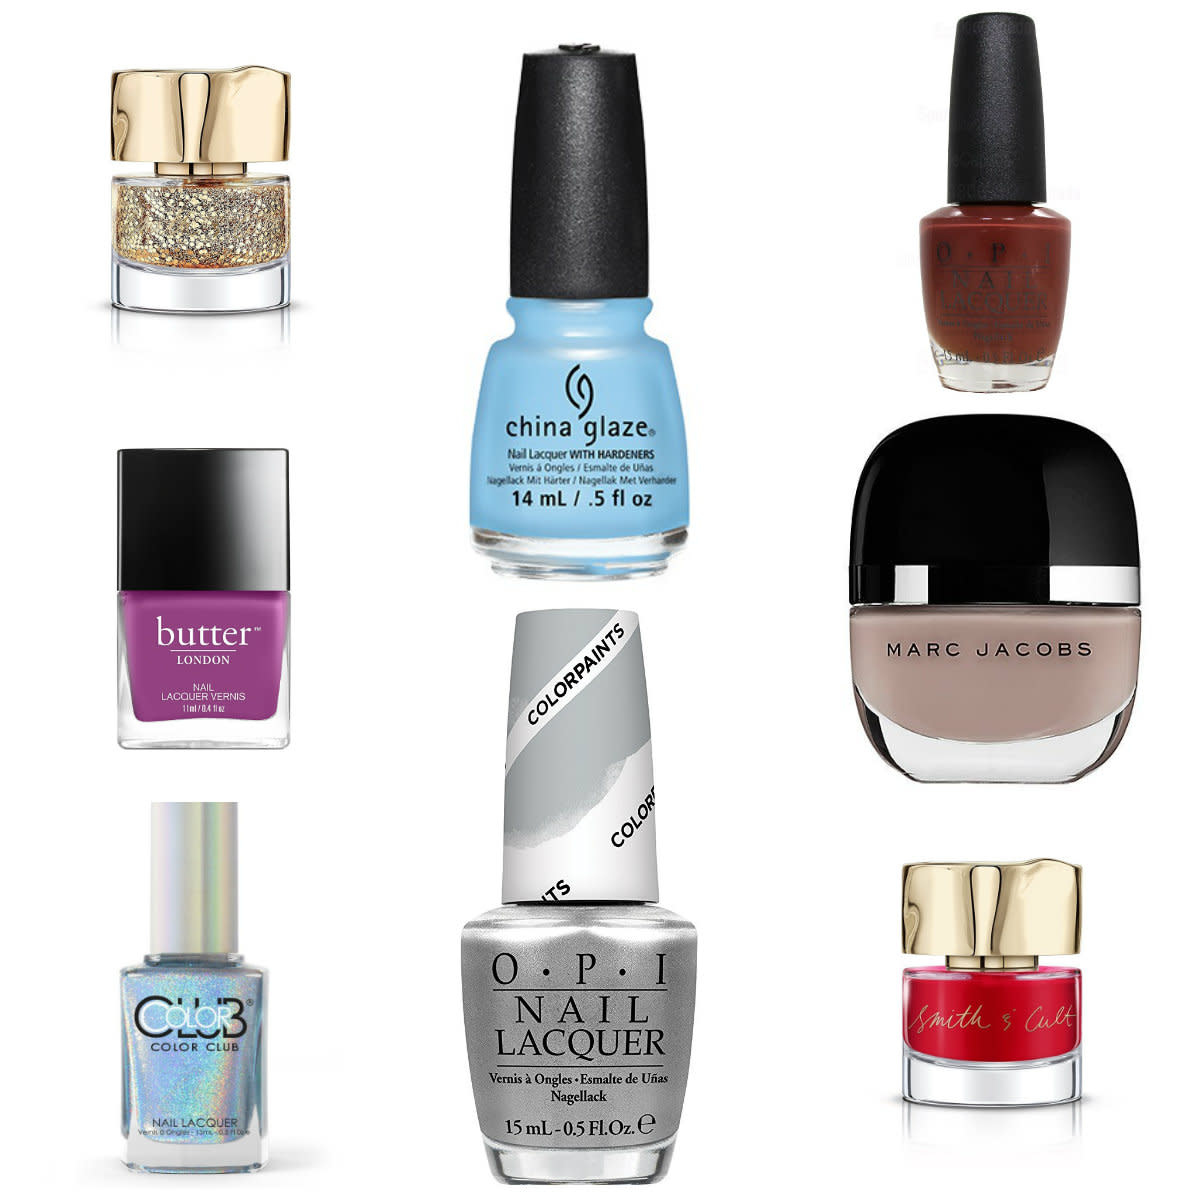 Top 10 Nail Polish Colors for Winter: From Burgundy to Blue